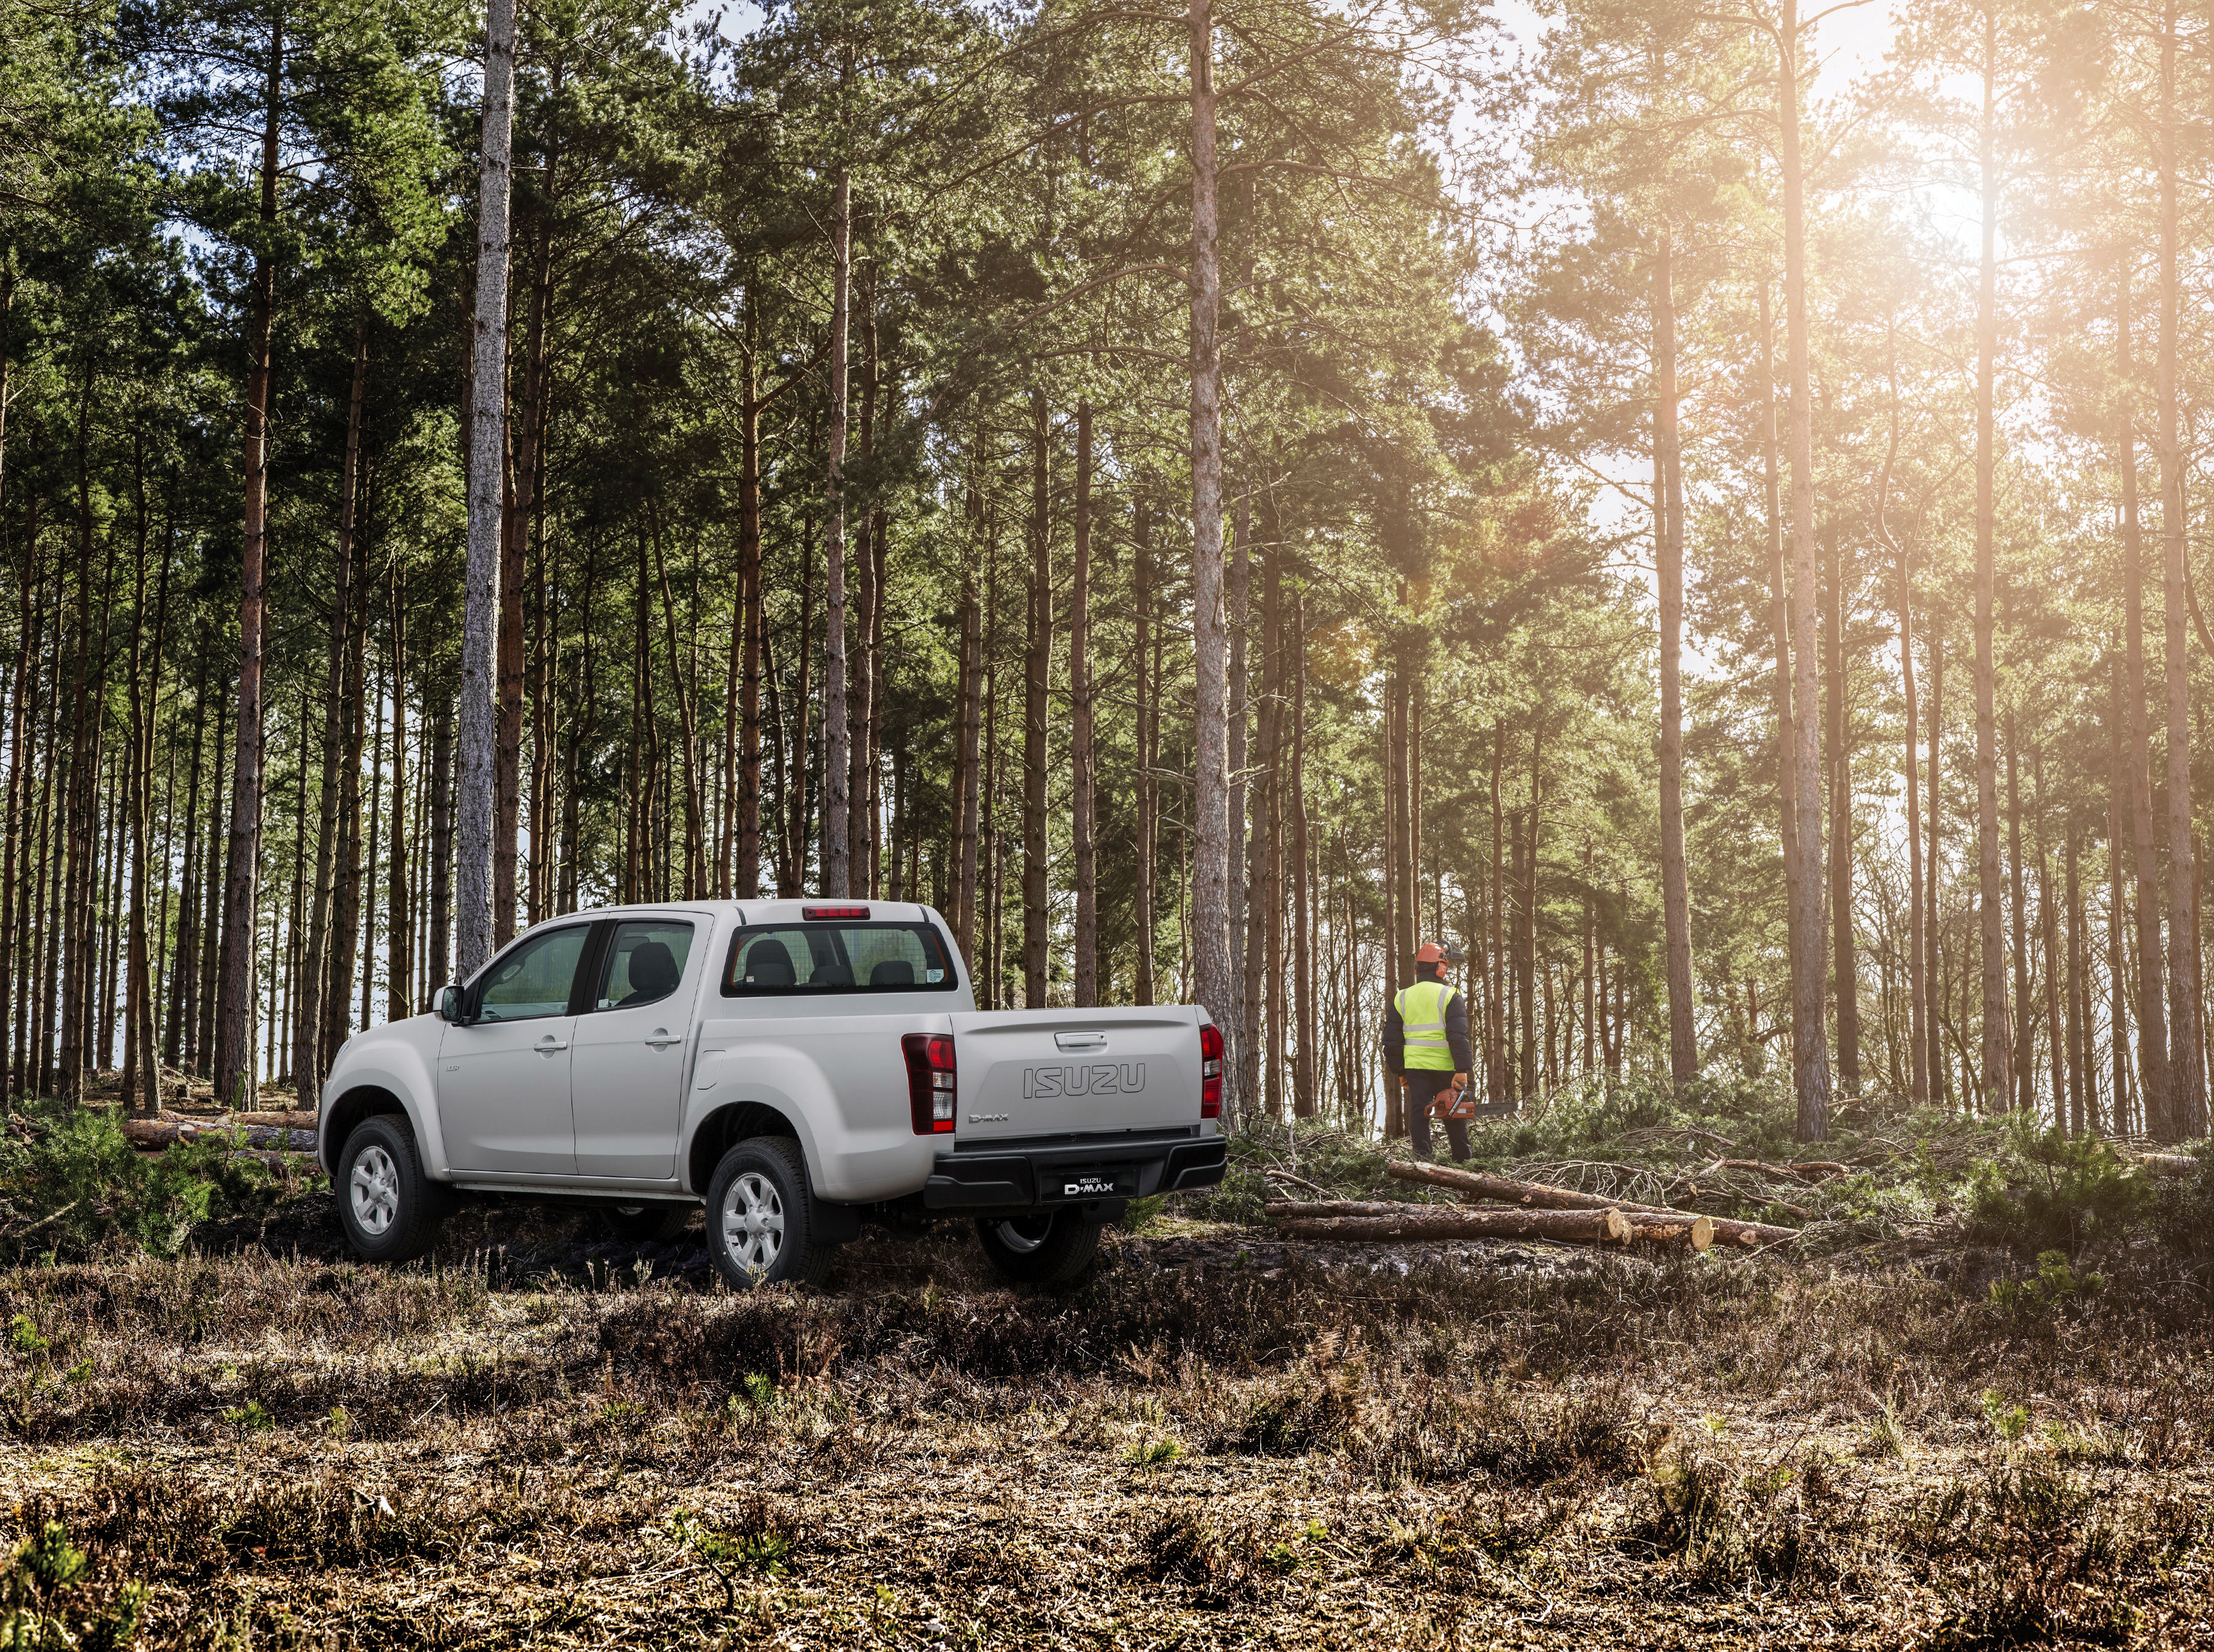 Isuzu D-Max Eiger in the forest